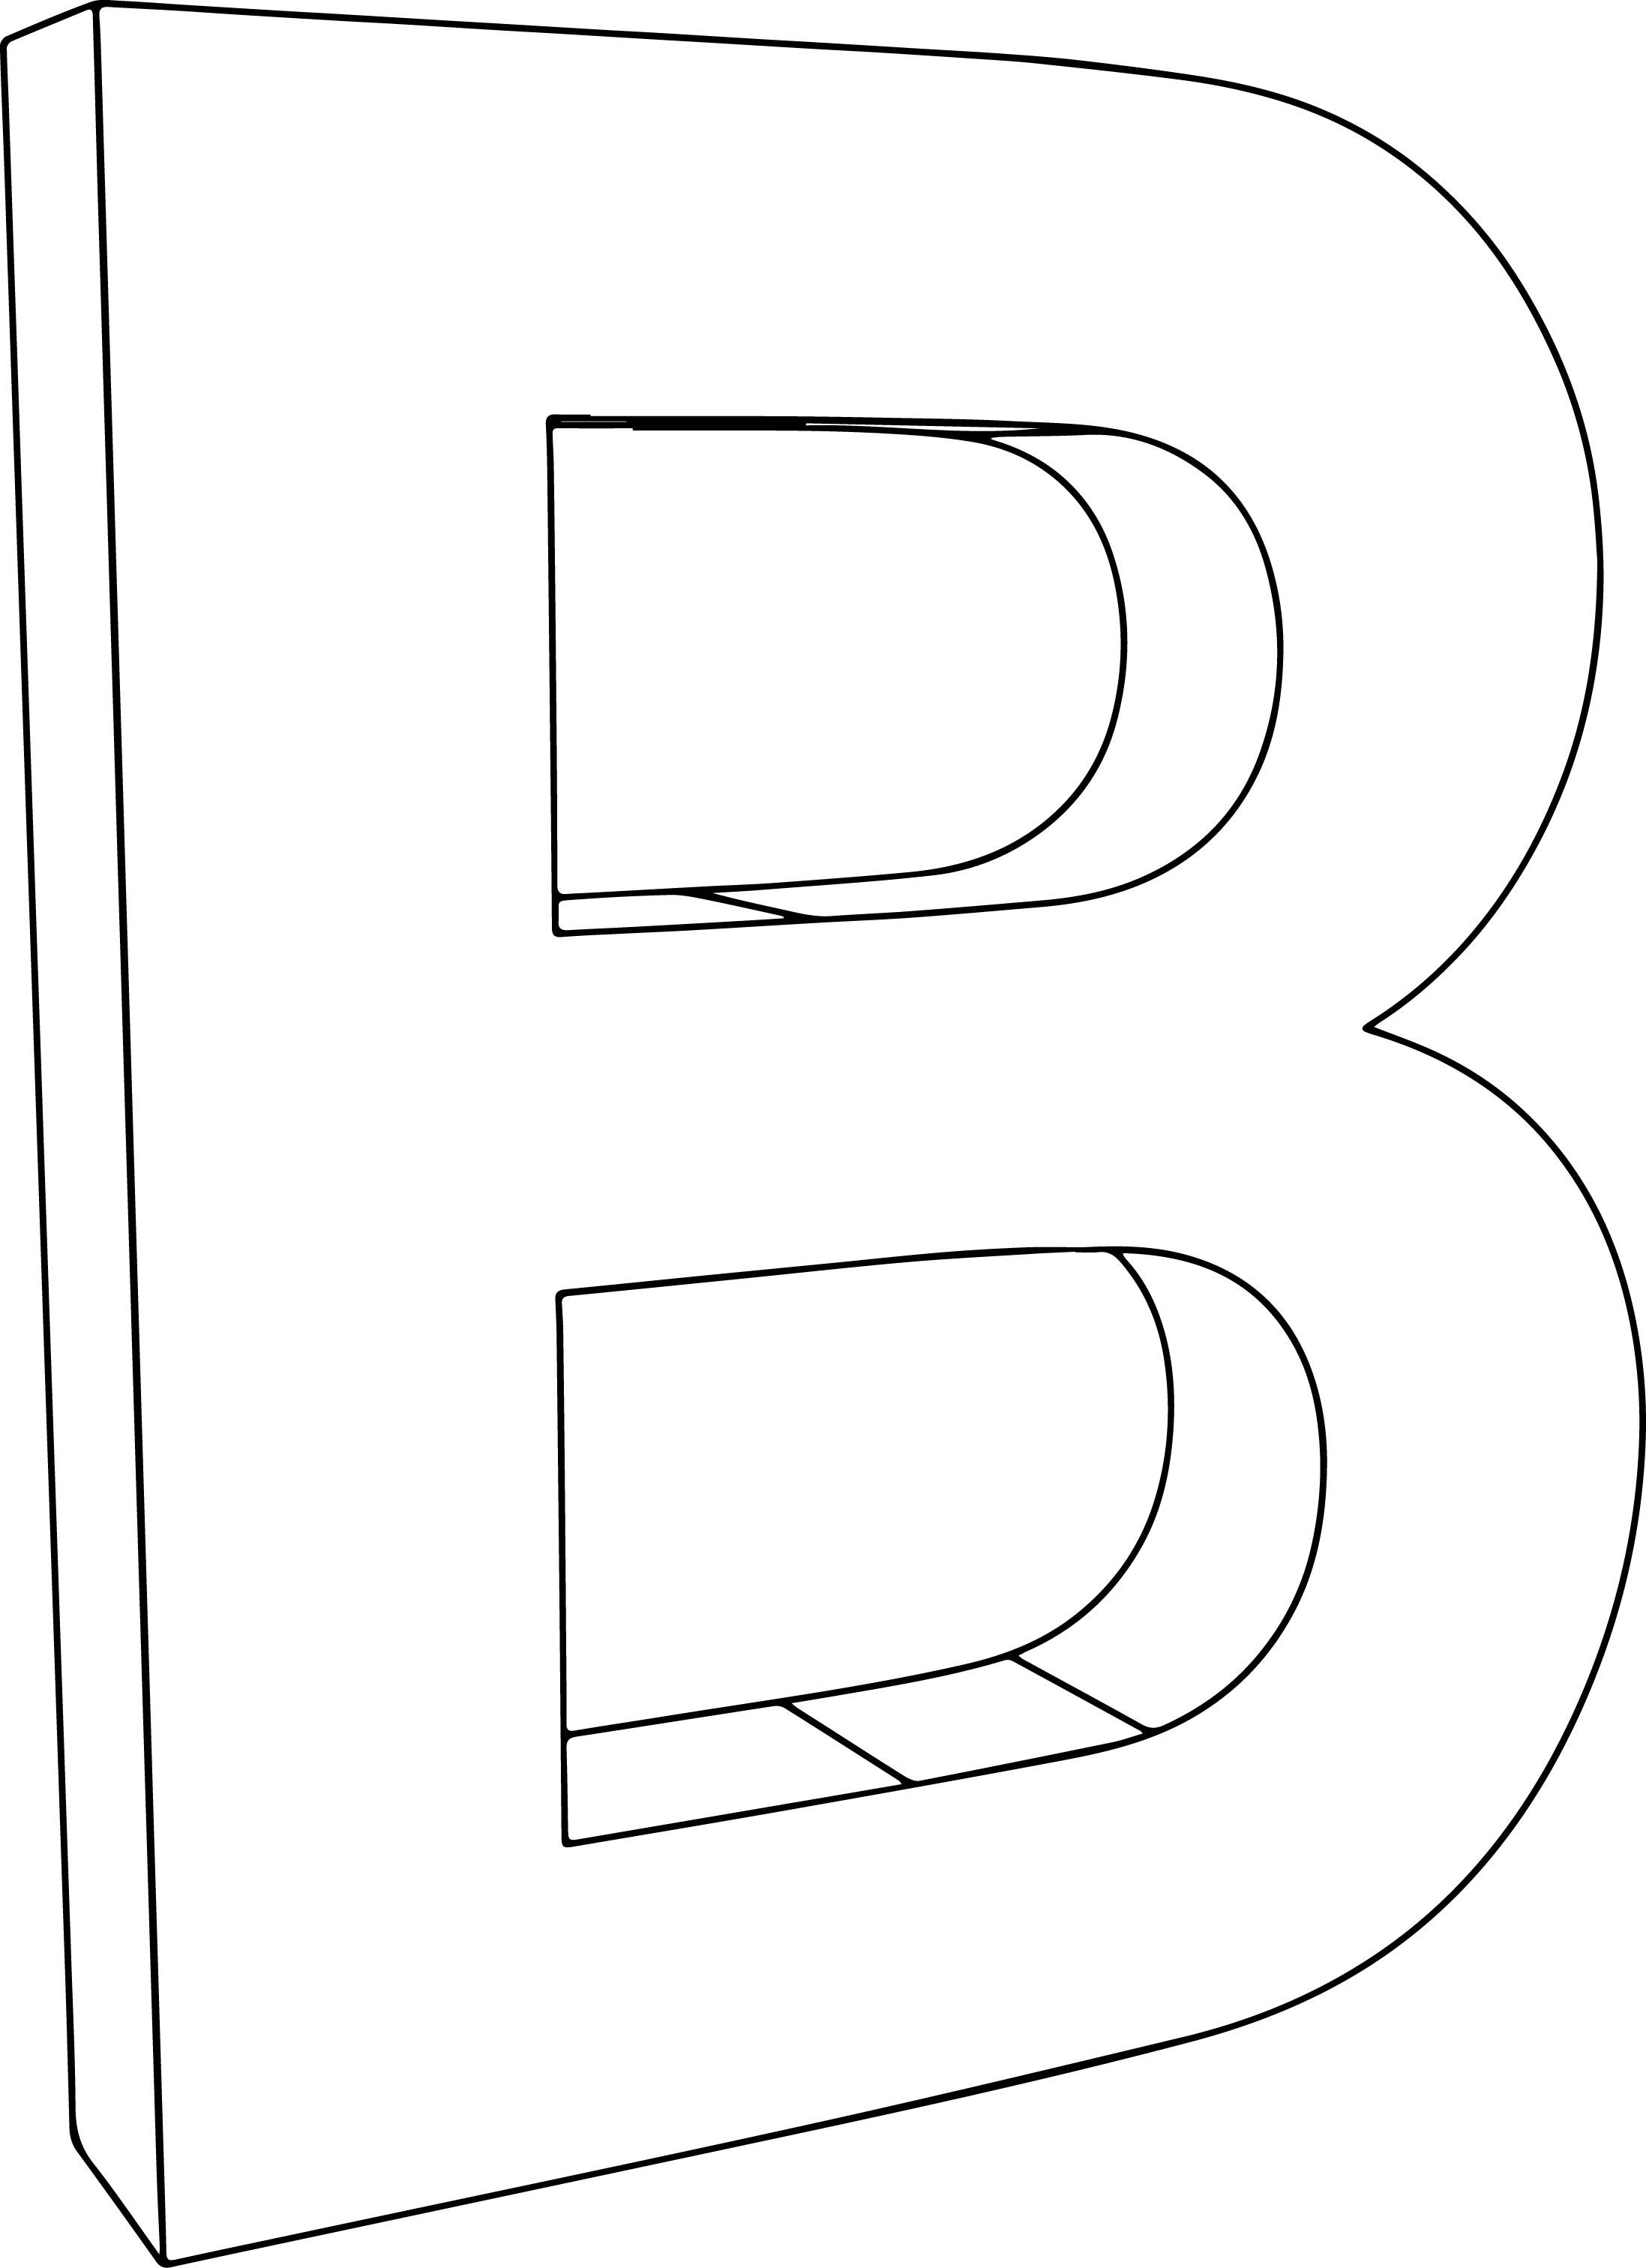 Nice 3d B Character Letter Coloring Page